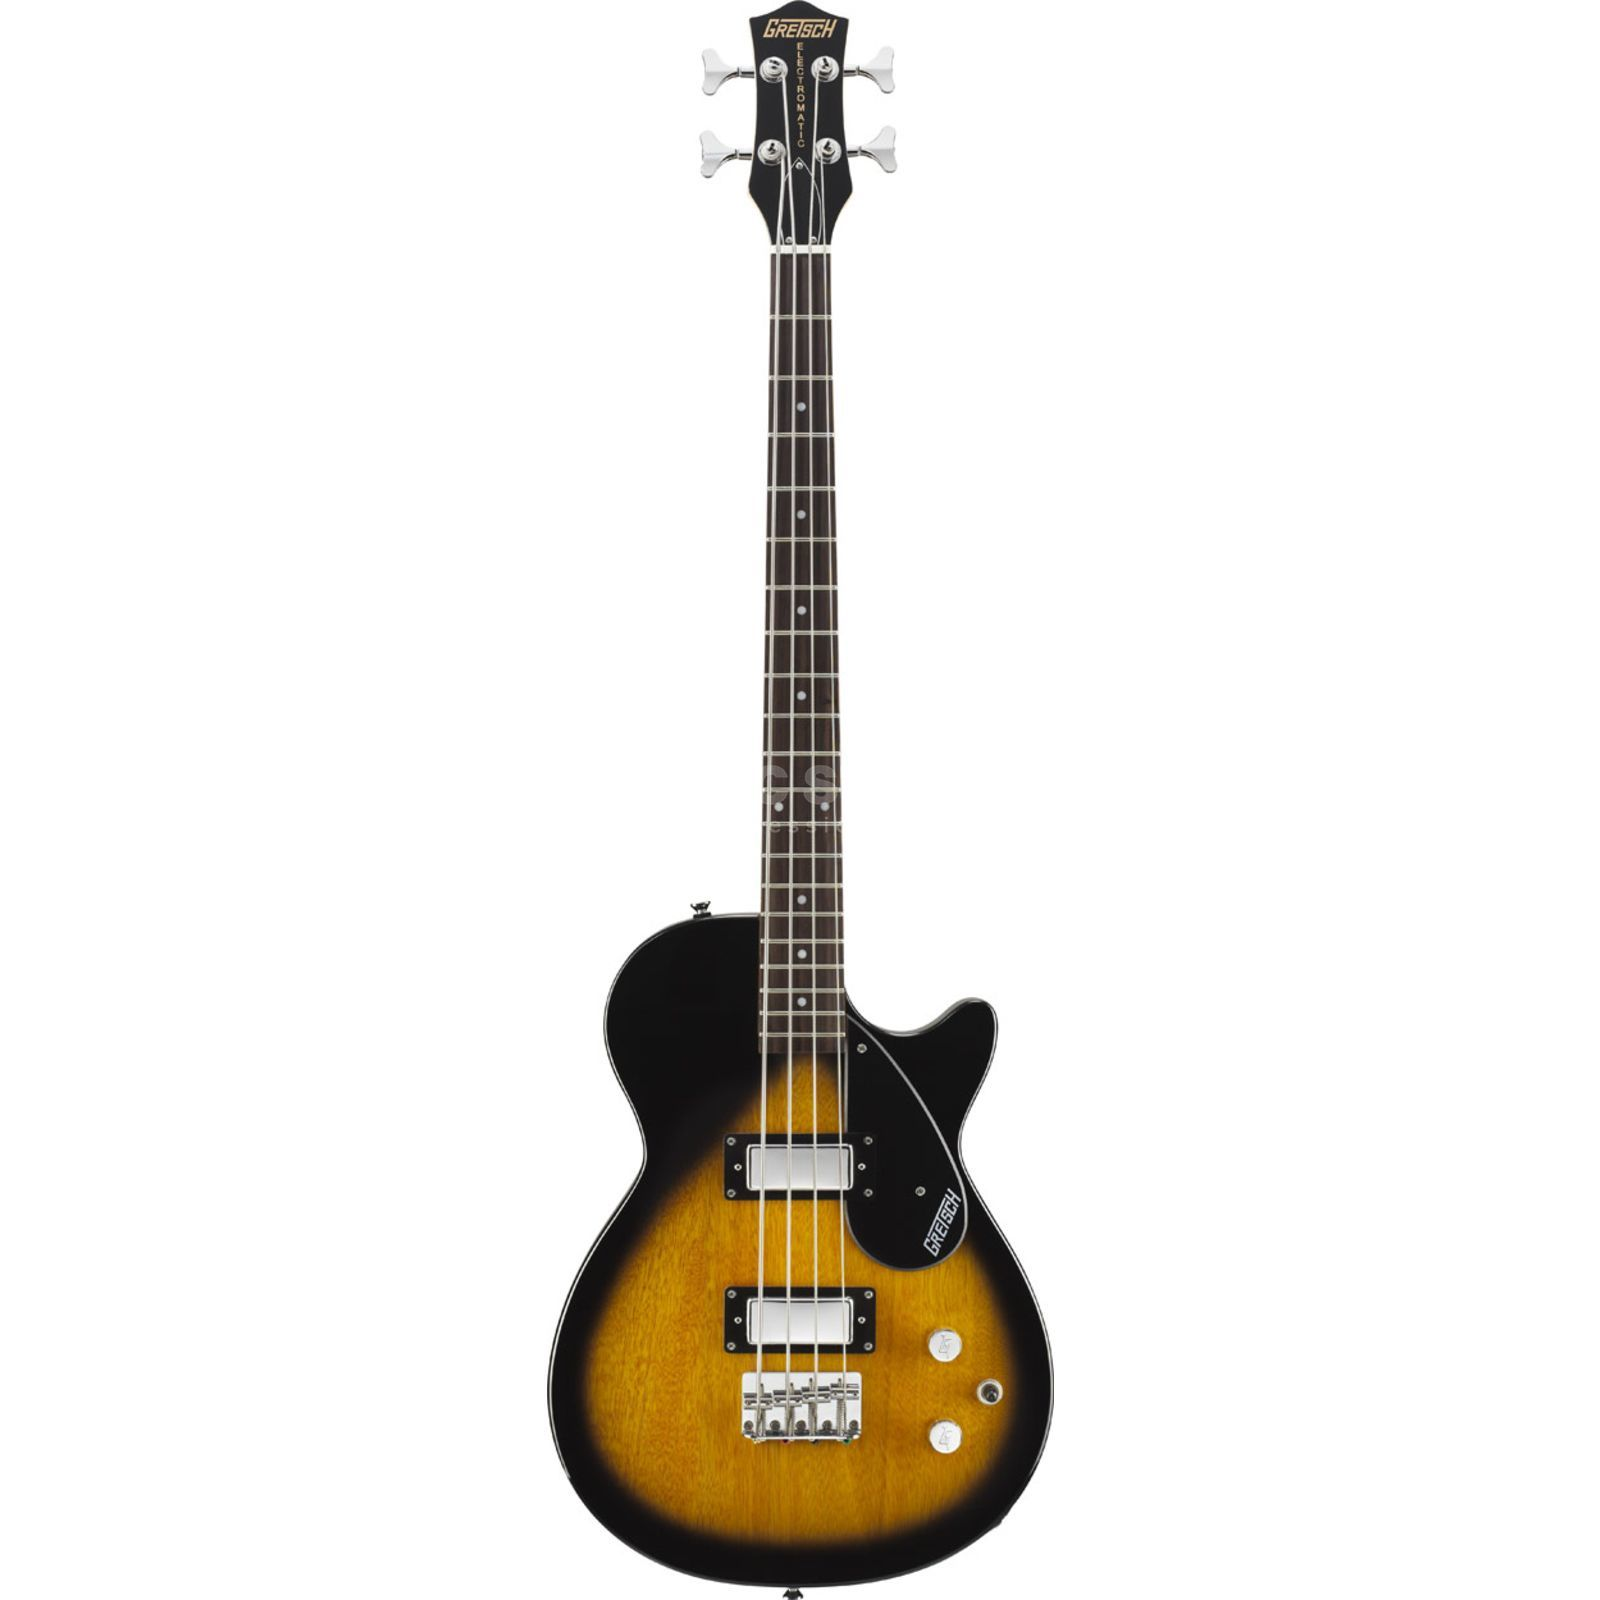 Gretsch G2220 Junior Jet II Bass Guita r, Tobacco Sunburst   Produktbillede